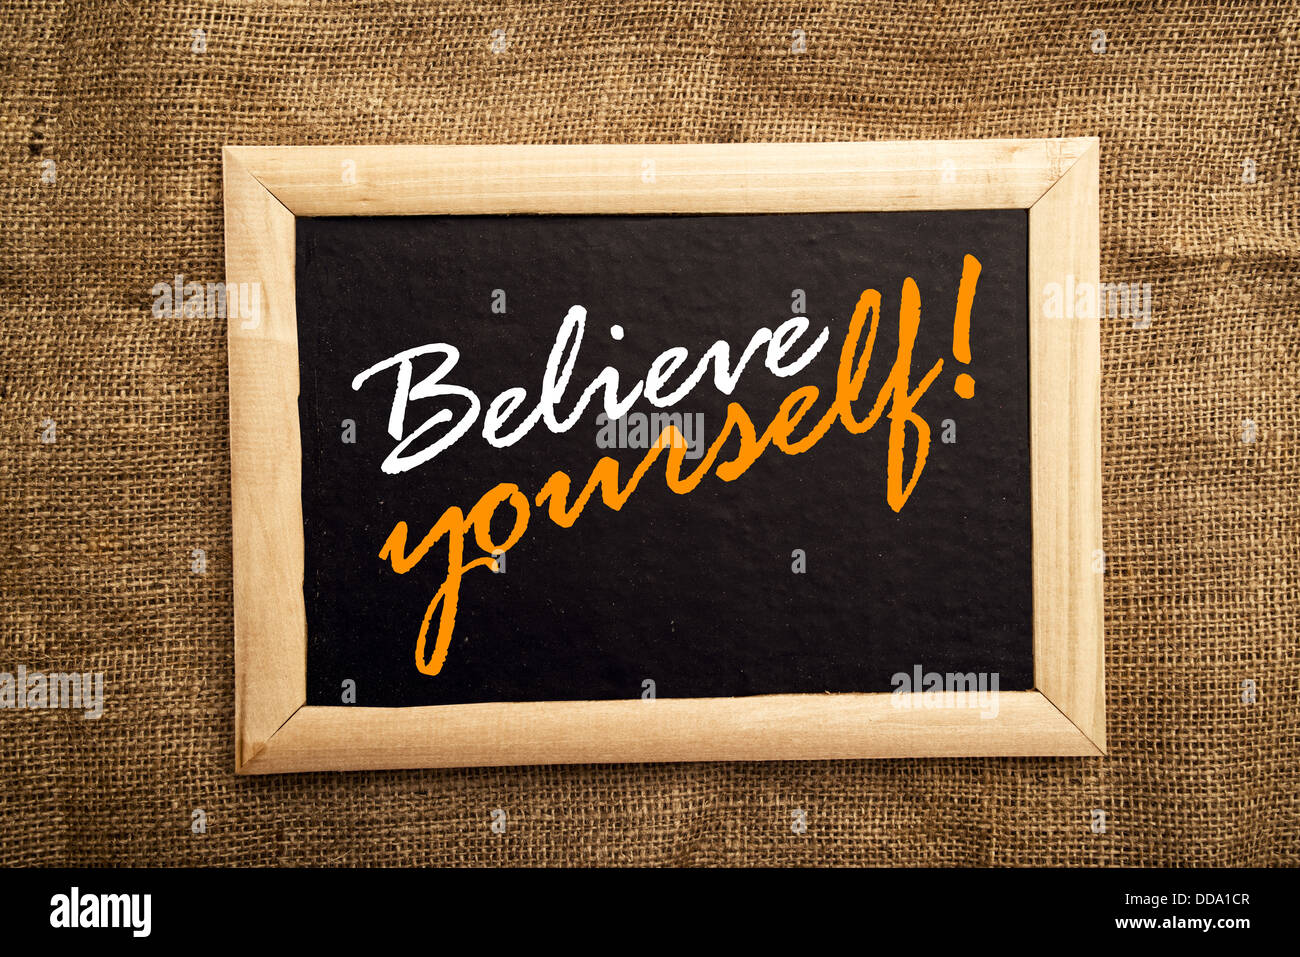 Believe yourself, motivational message on black board. - Stock Image